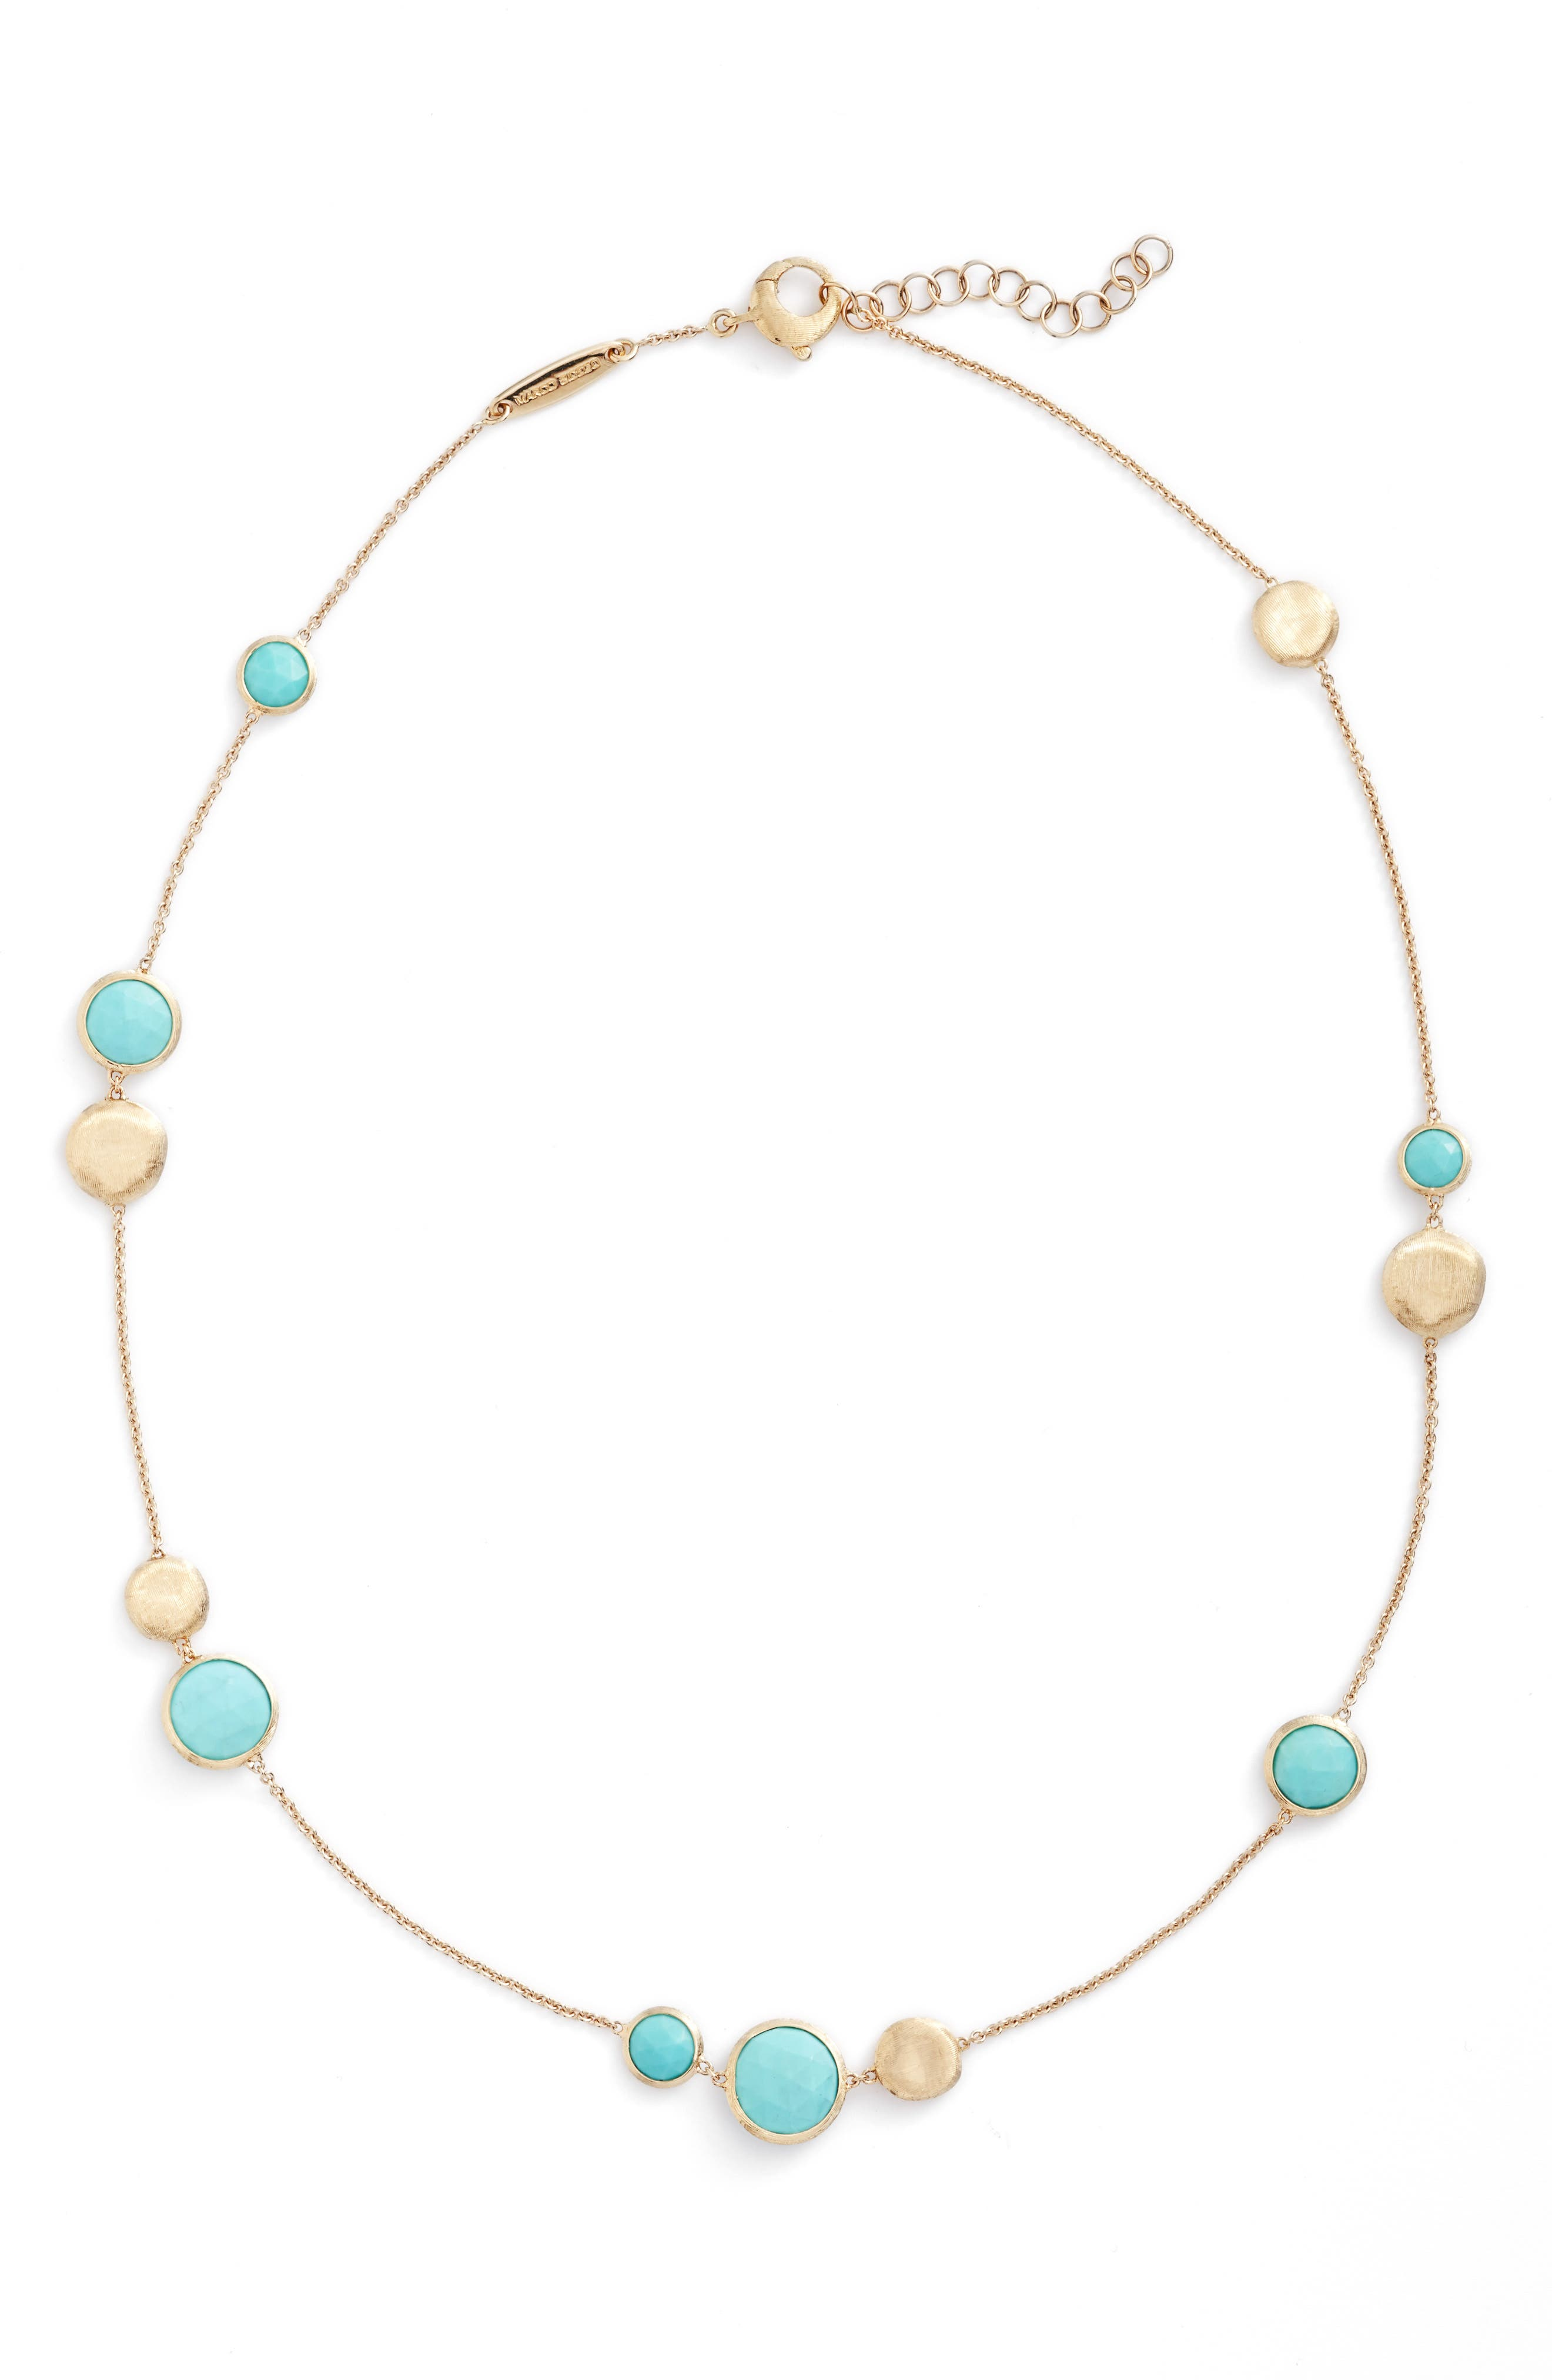 Jaipur Stone Collar Necklace,                         Main,                         color, YELLOW GOLD/ TURQUOISE